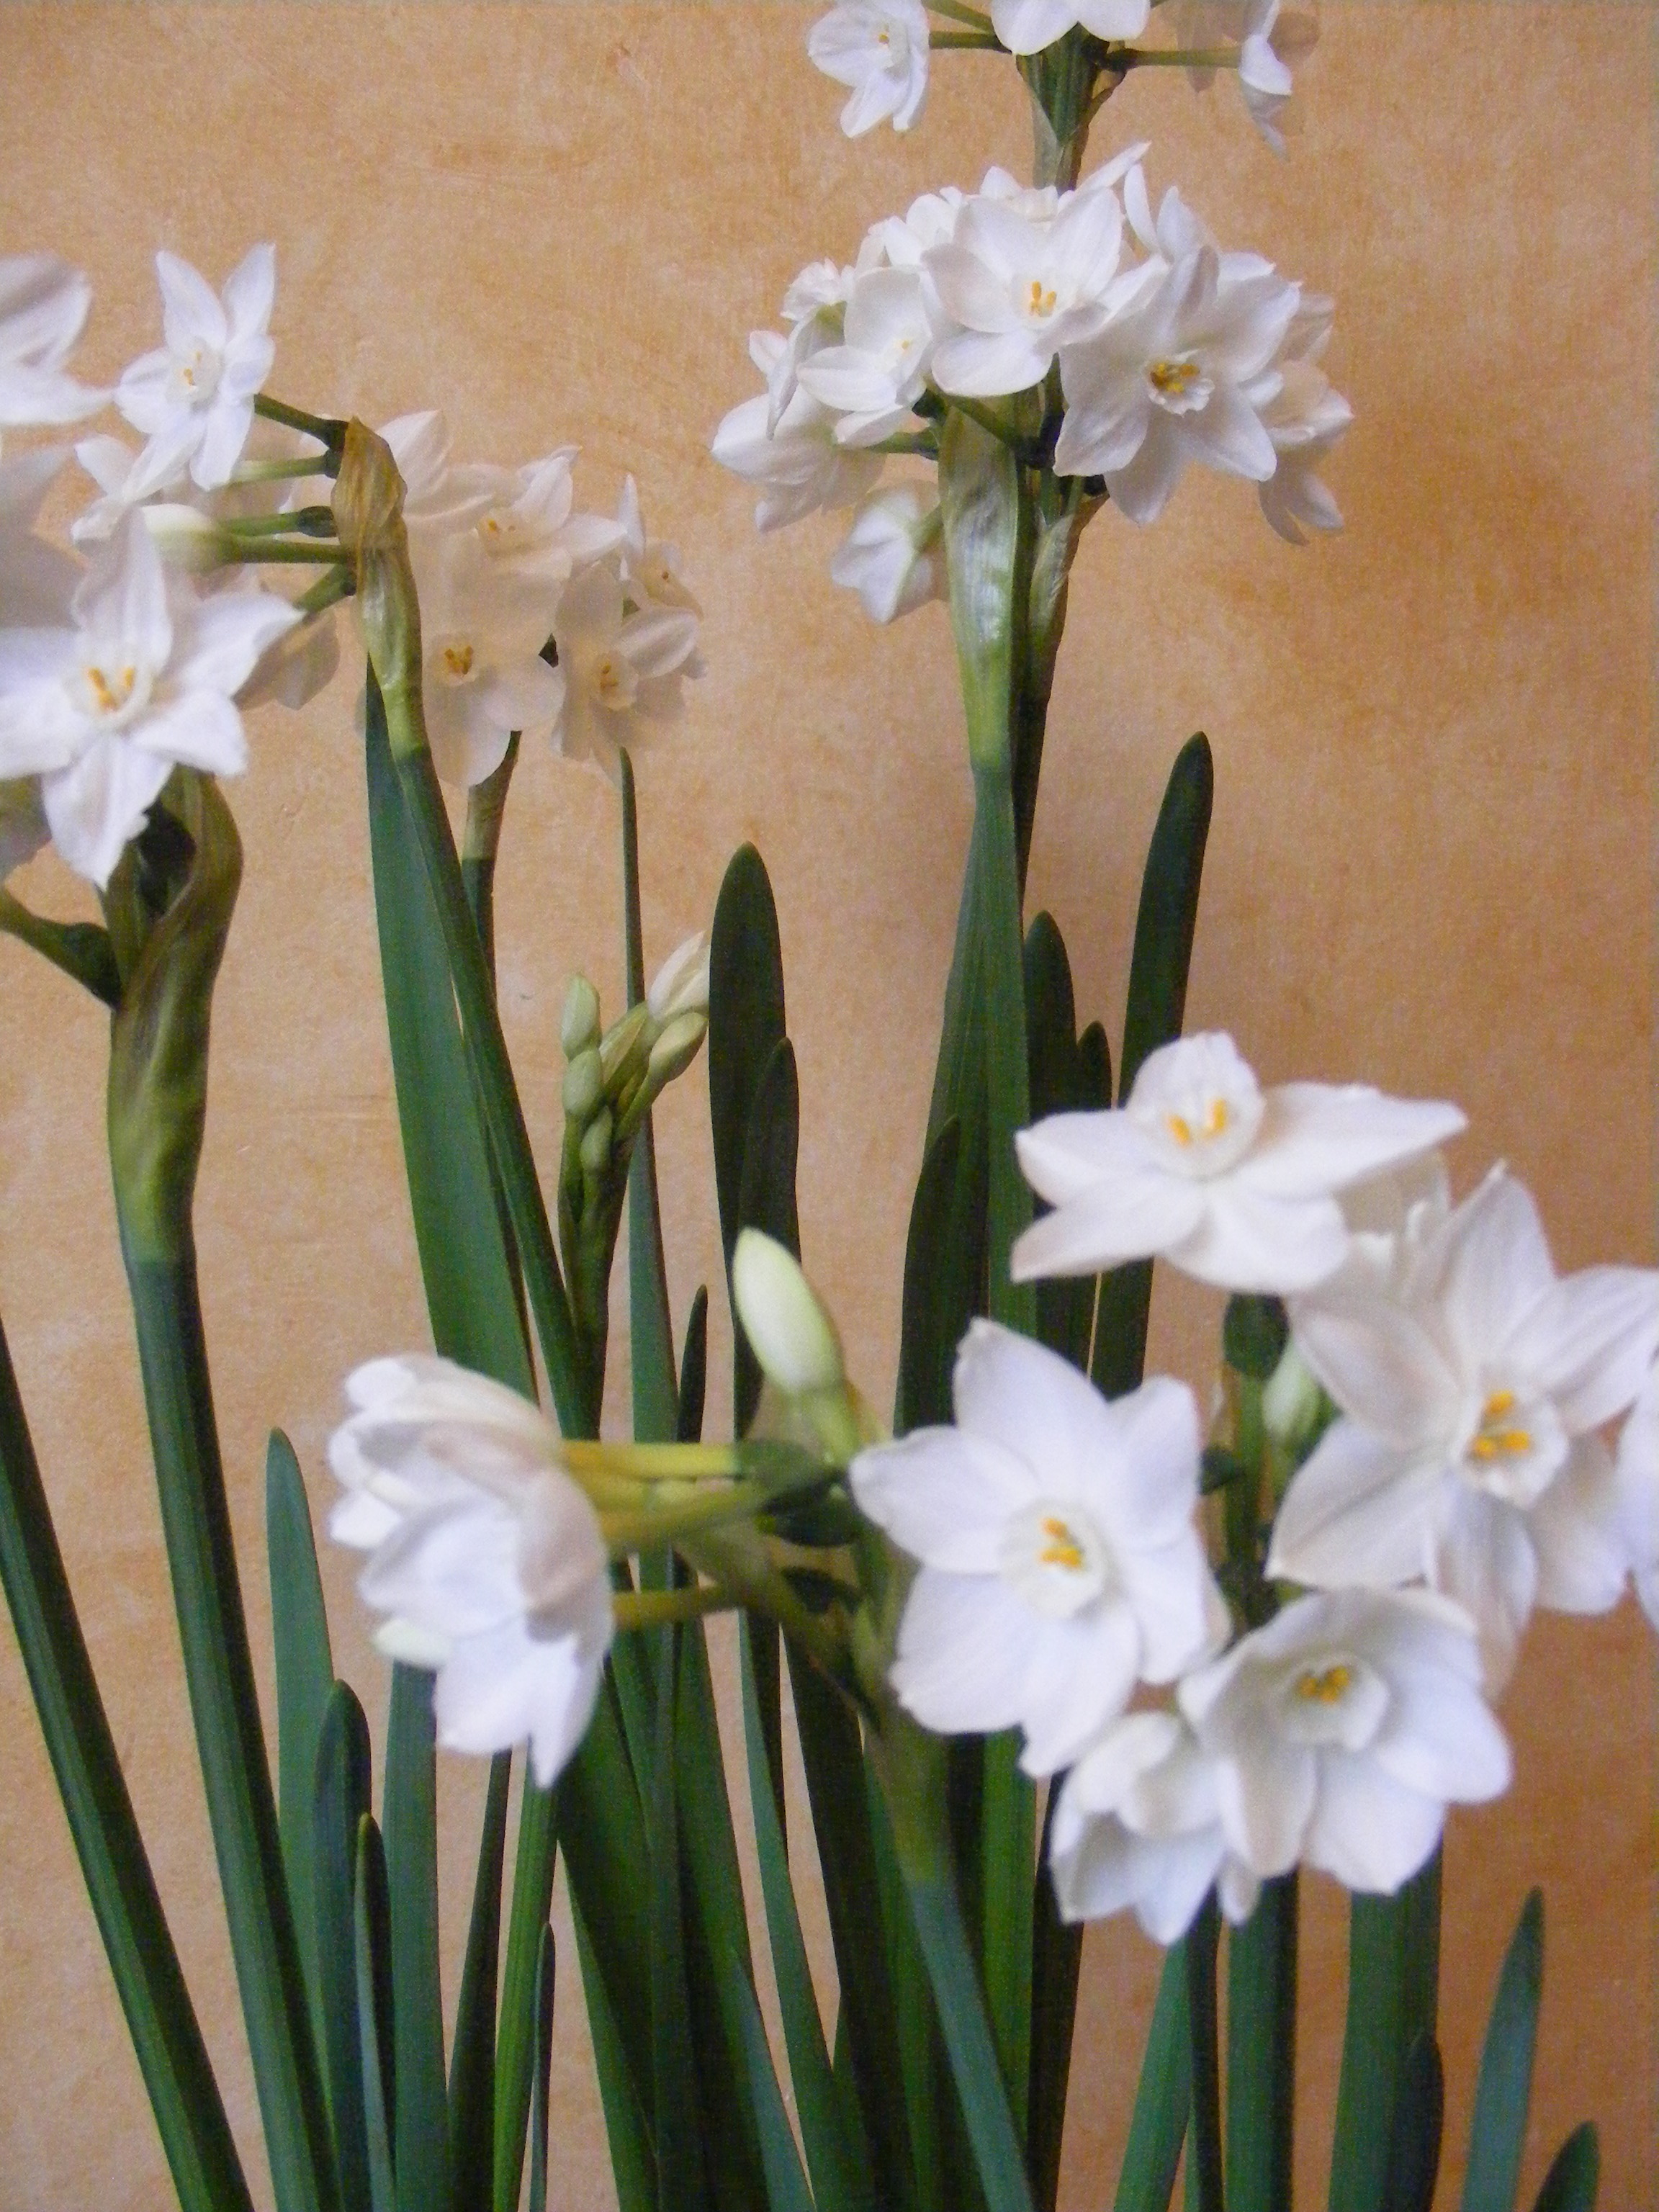 Plant Paperwhite Bulbs For Simple Decor Mollyinseattle